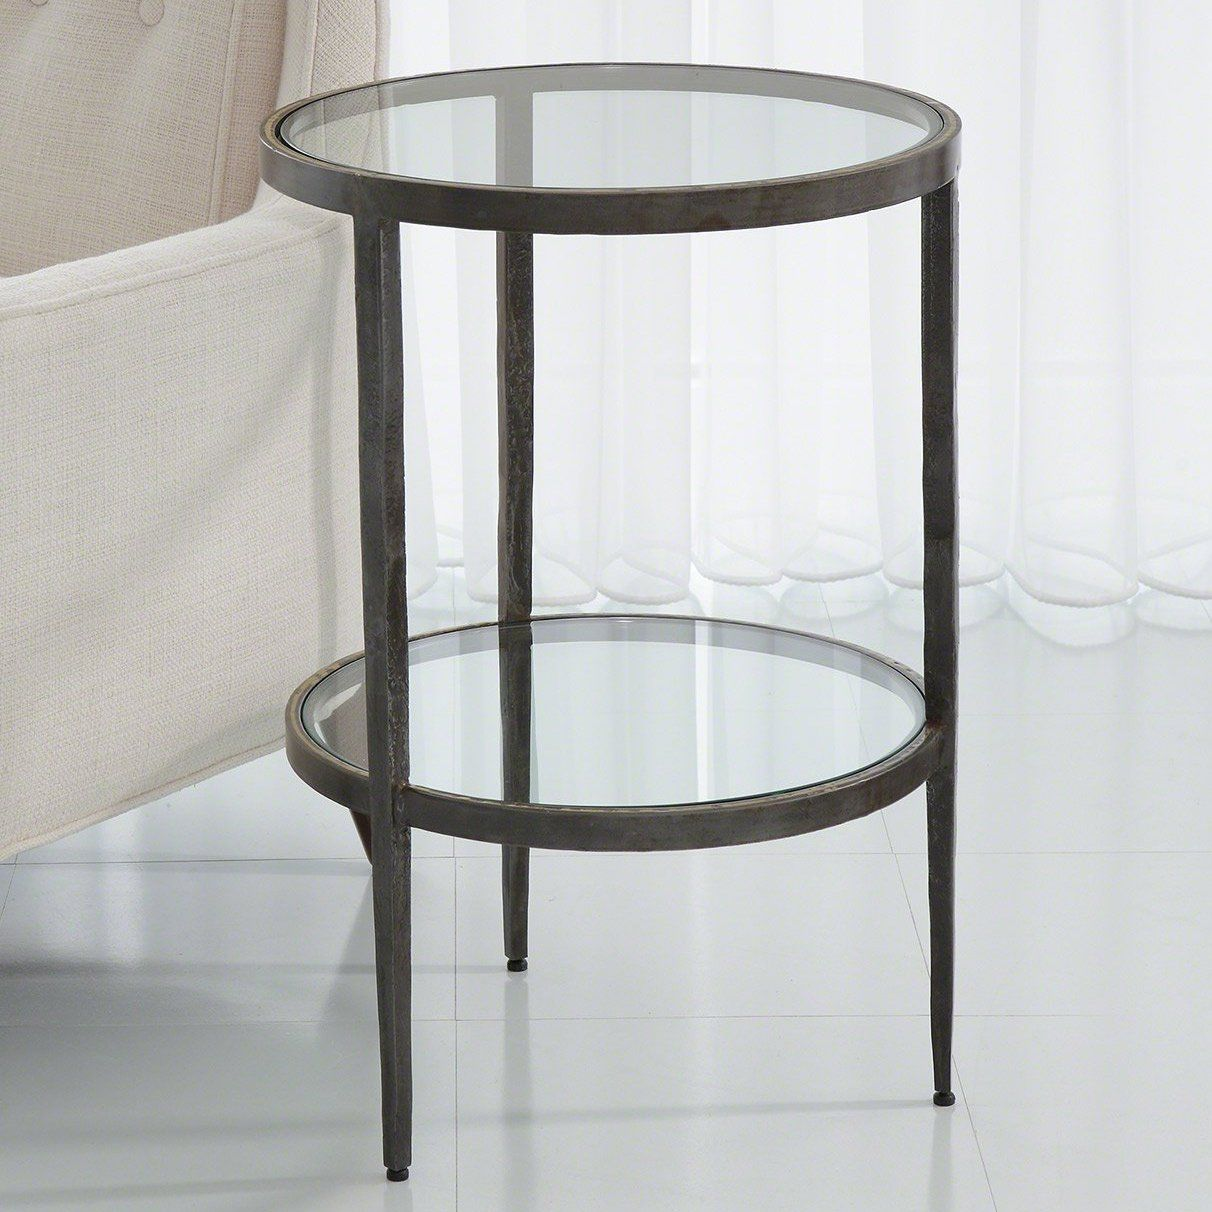 Studio A Laforge Two Tiered Side Table Side Table Table Home Decor